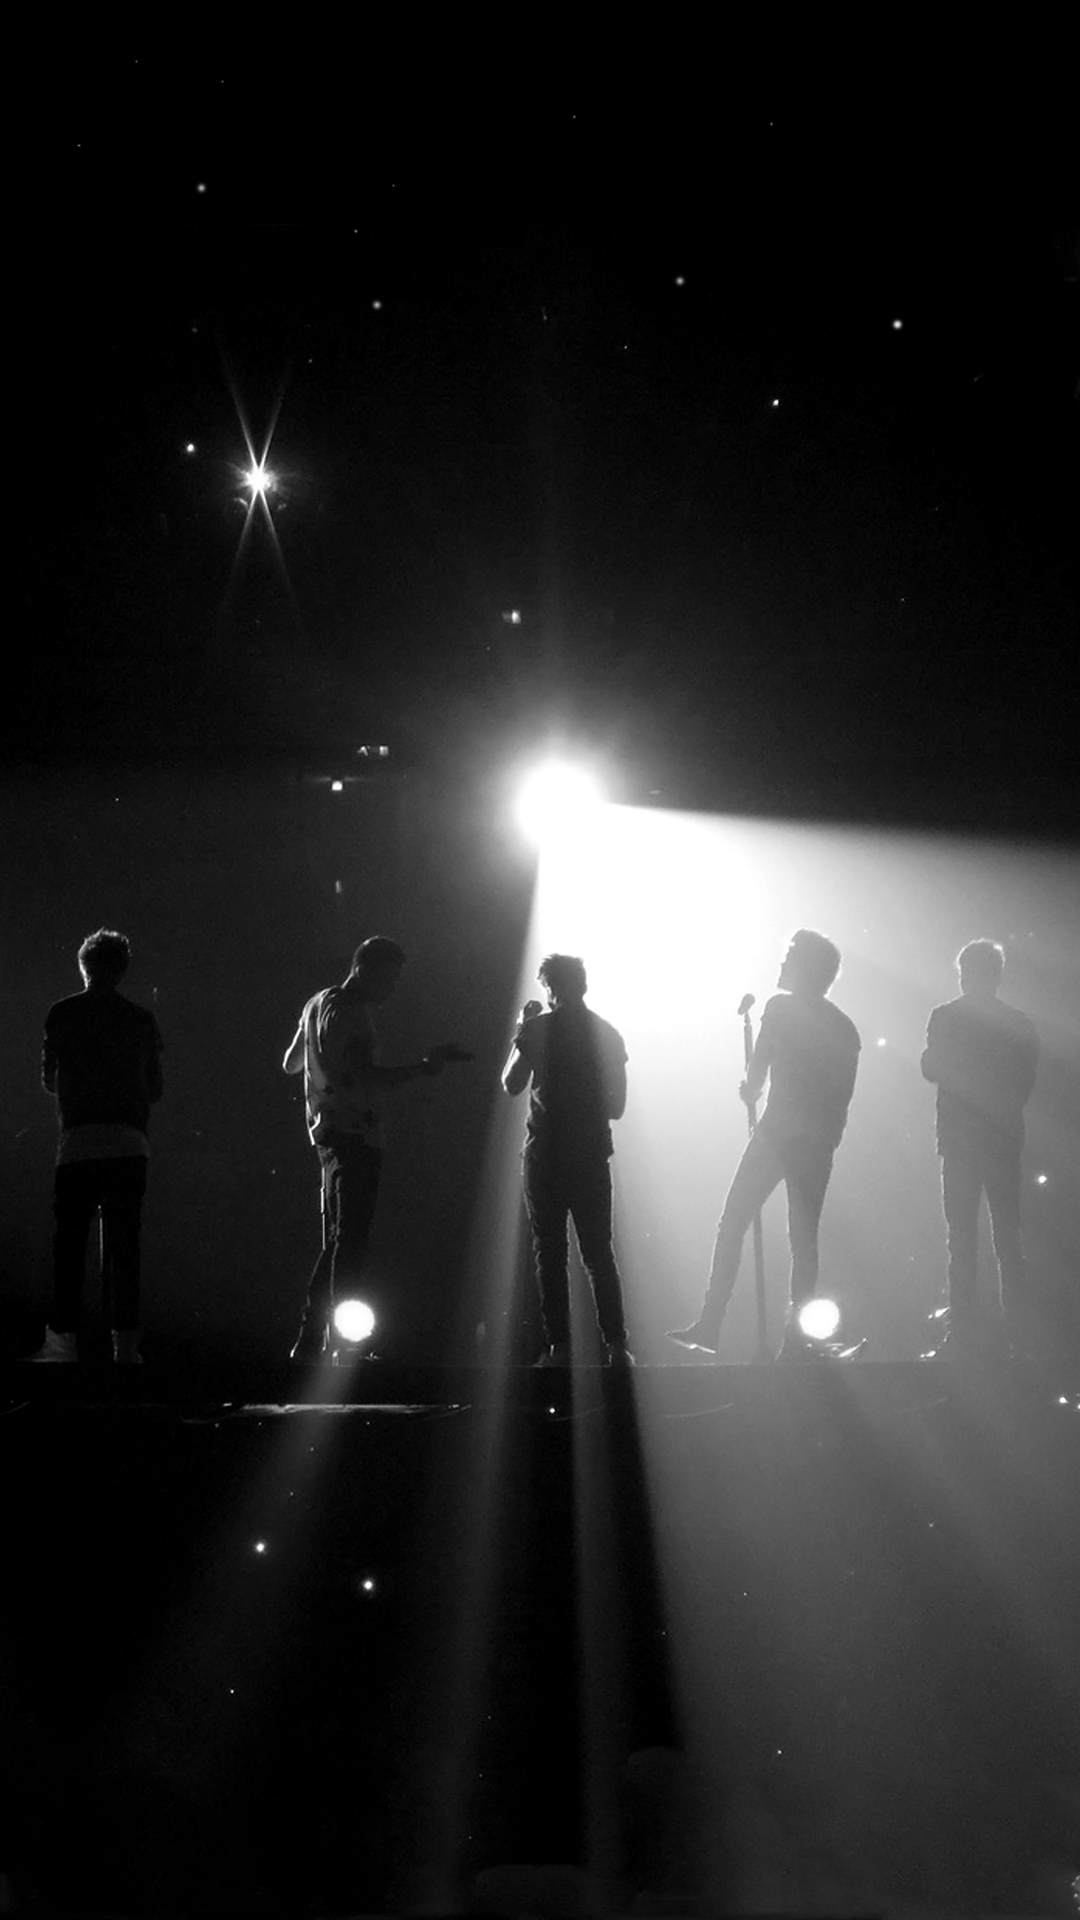 One Direction wallpaper for mobile phones   One Direction 1080x1920